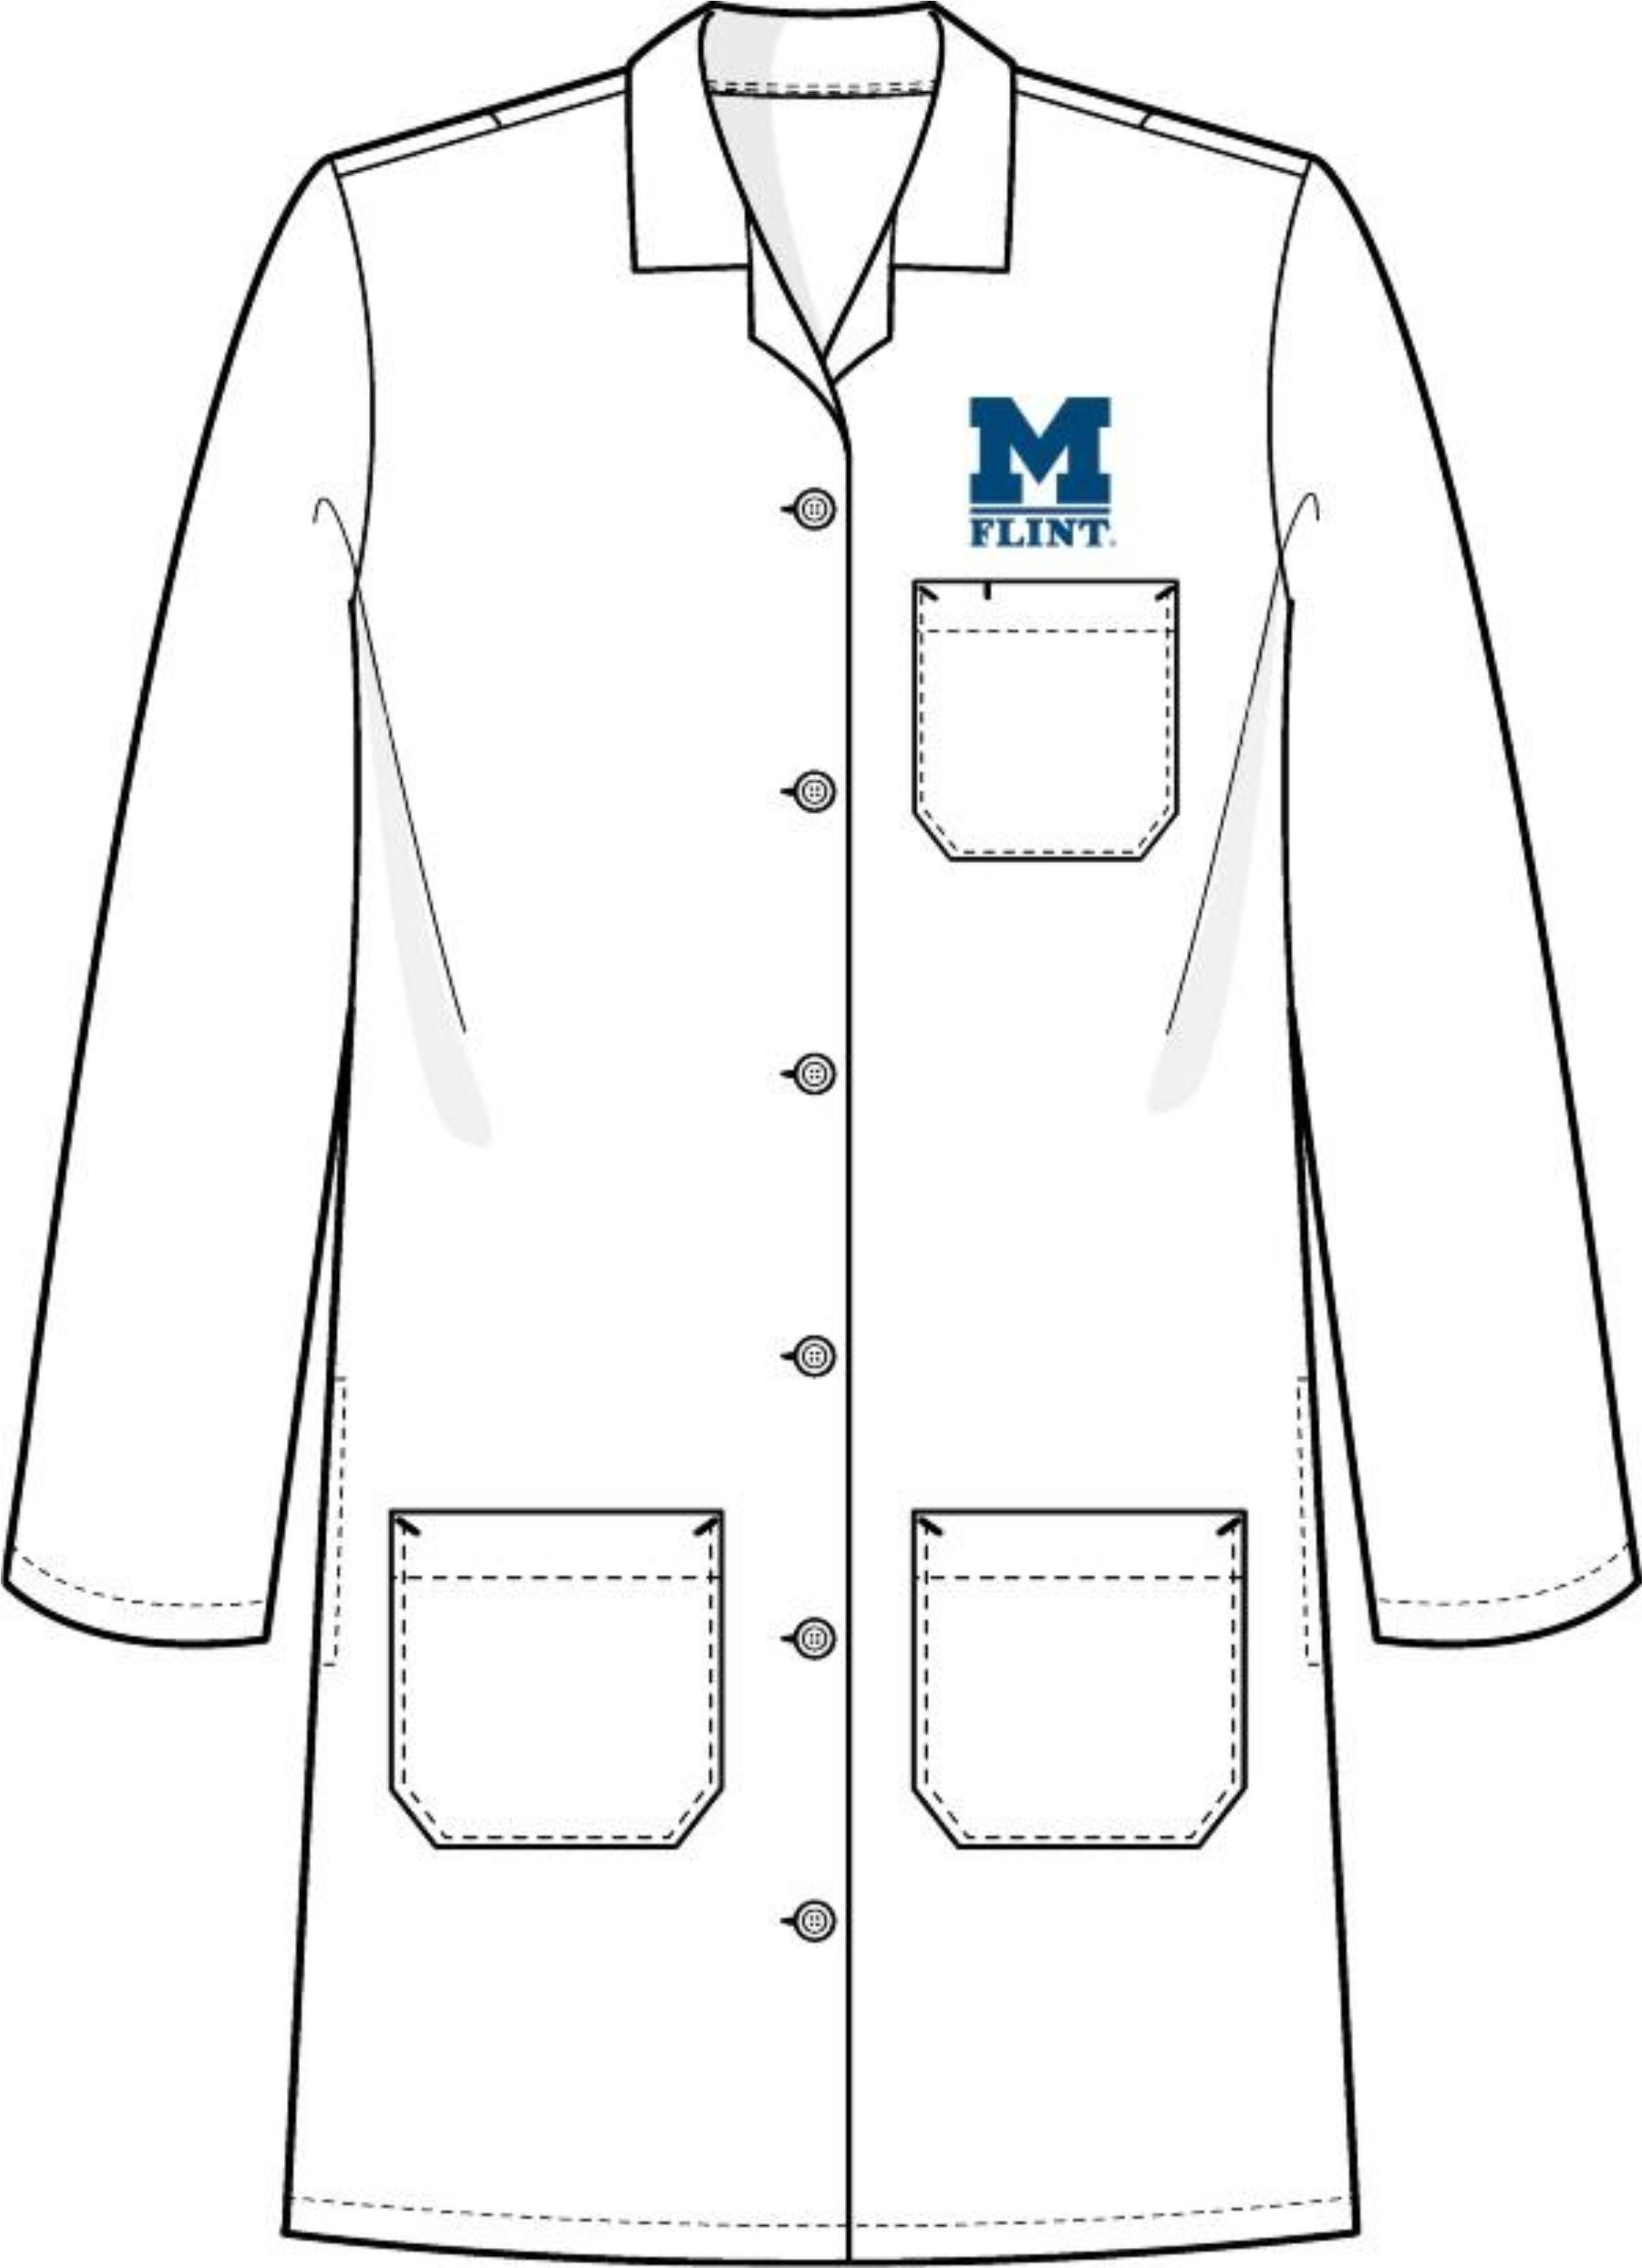 2501x3455 Images Of Lab Coat Vector